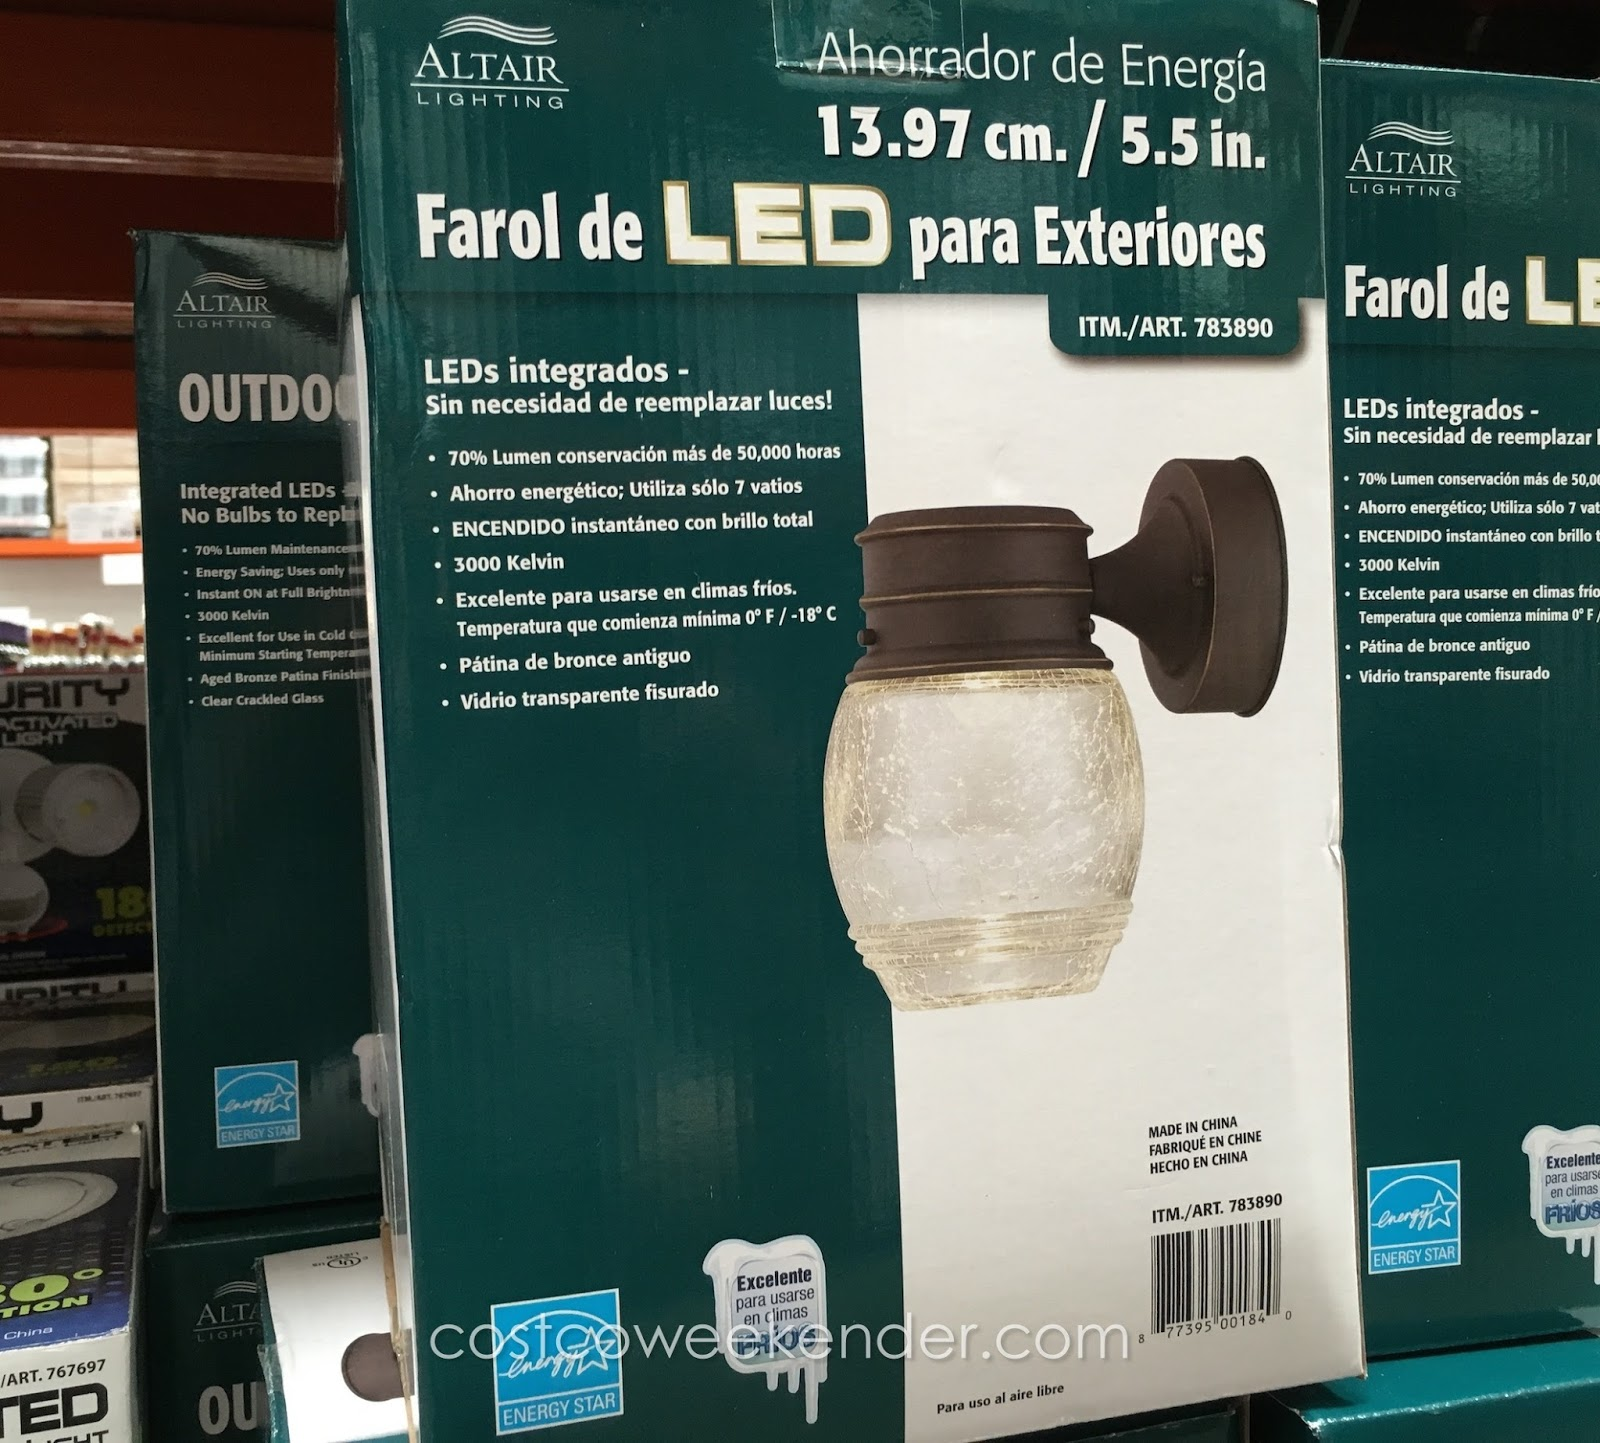 altair lighting al 2152 outdoor led